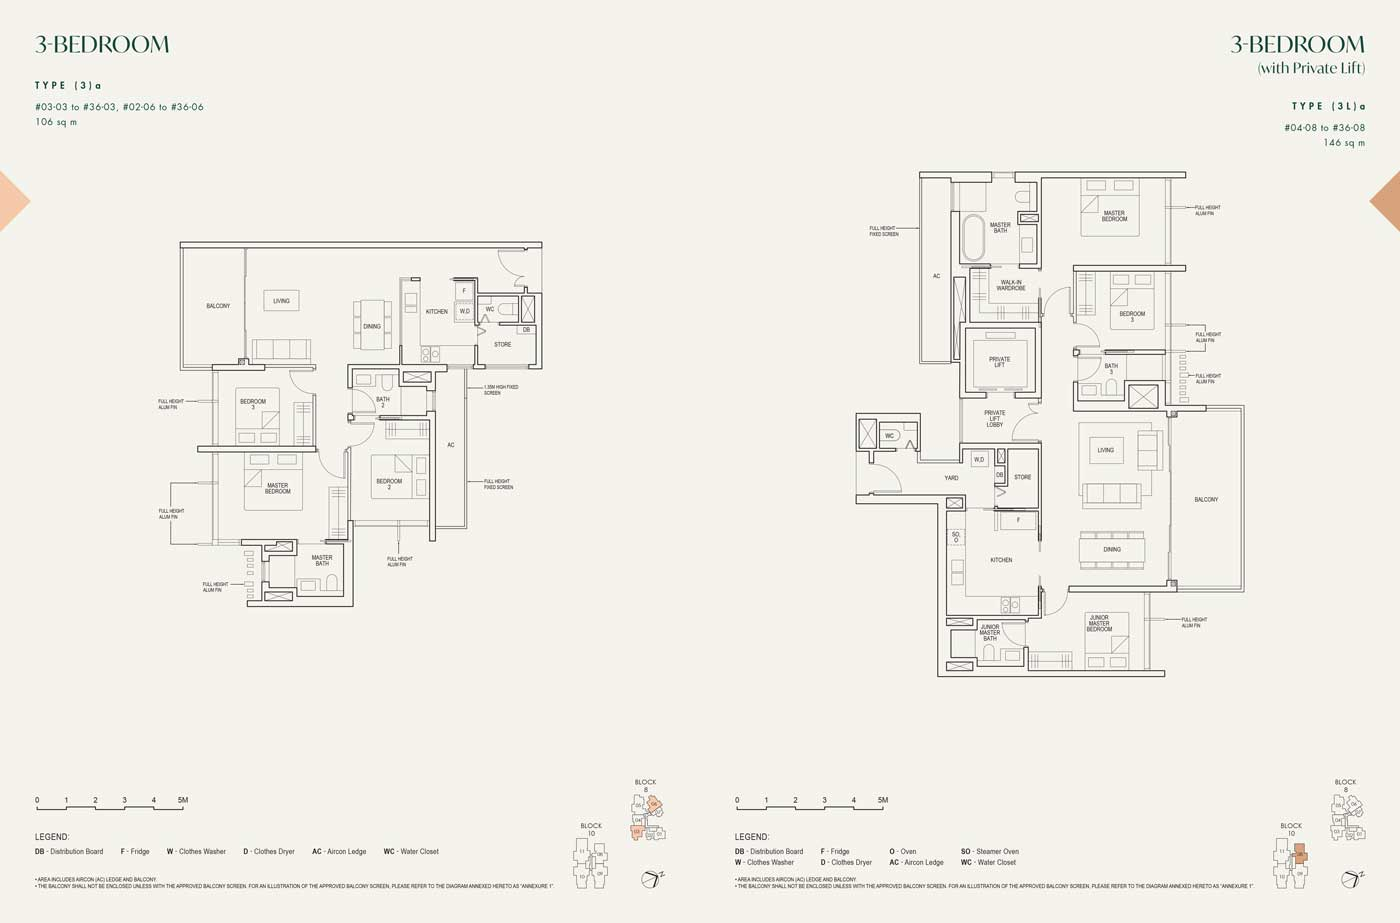 the-avenir-floor-plan-3-bedroom-type-3a